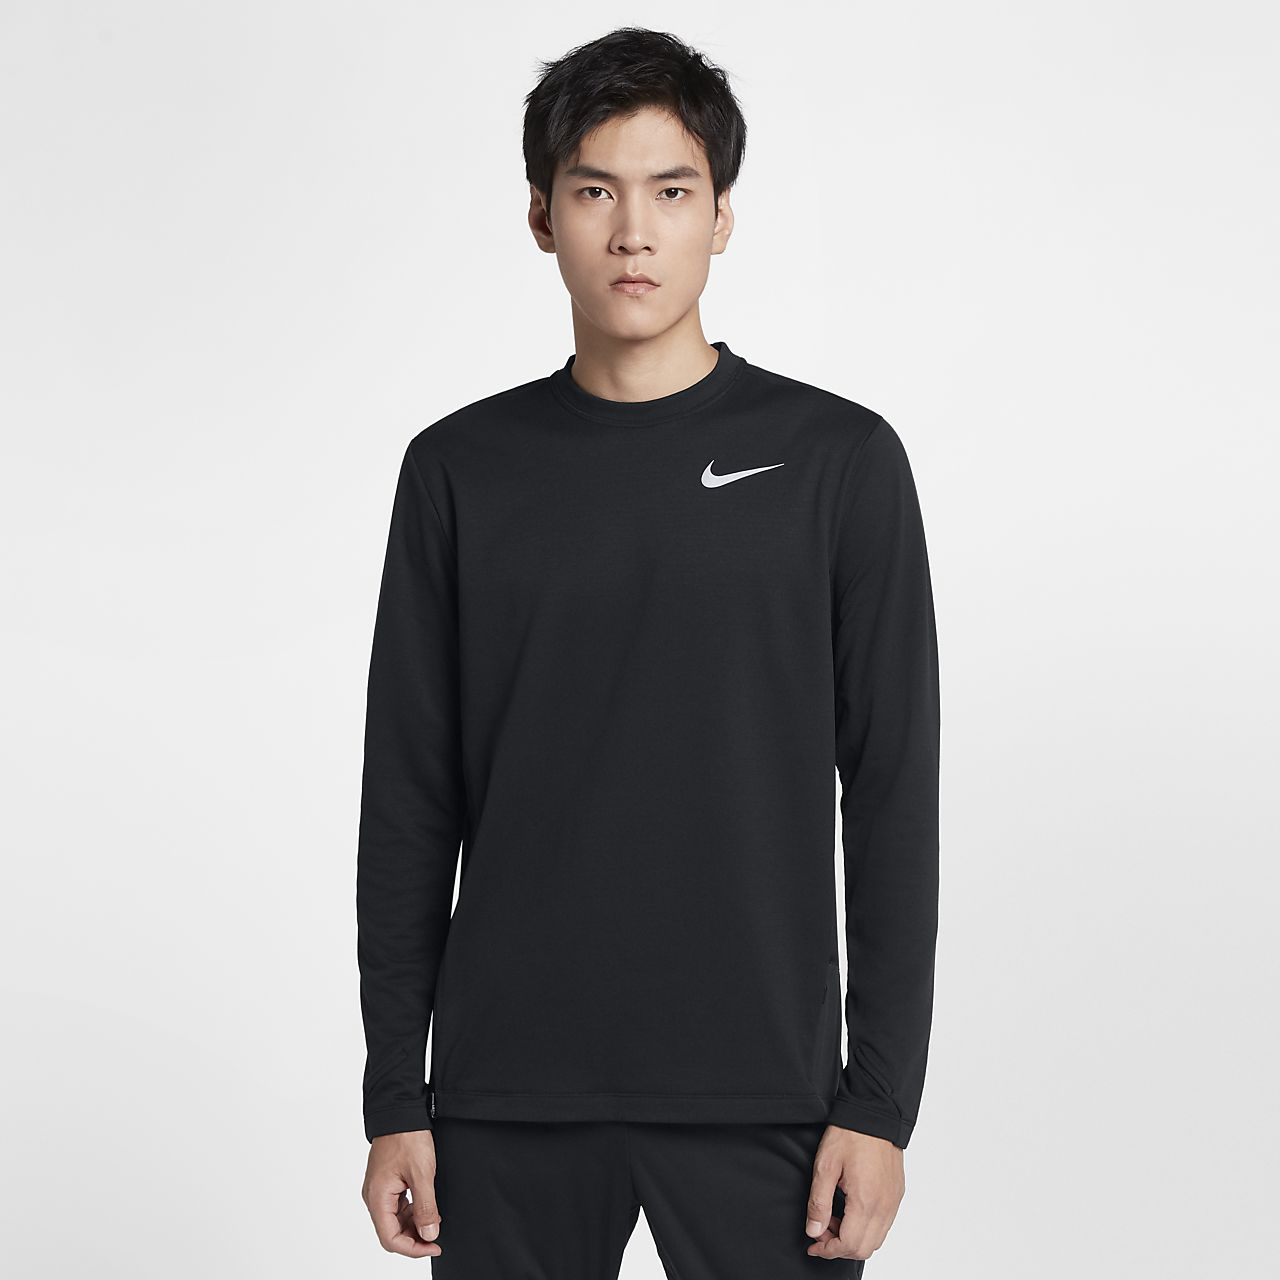 e6f383c440a Nike Sphere Element 2.0 Men s Long-Sleeve Running Top. Nike.com CA